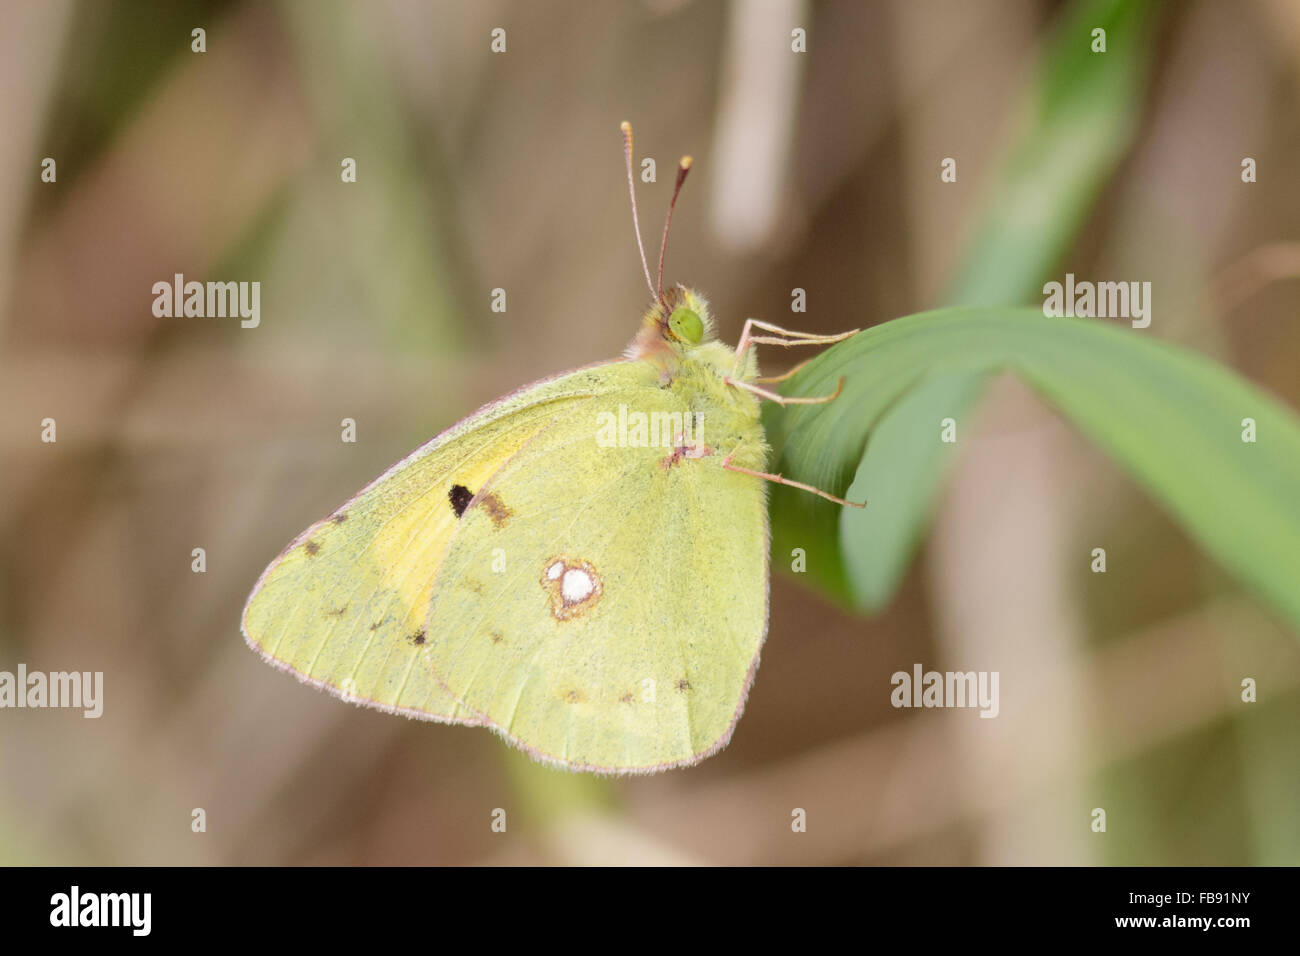 Clouded yellow butterfly (Colias croceus) perched on a reed. - Stock Image